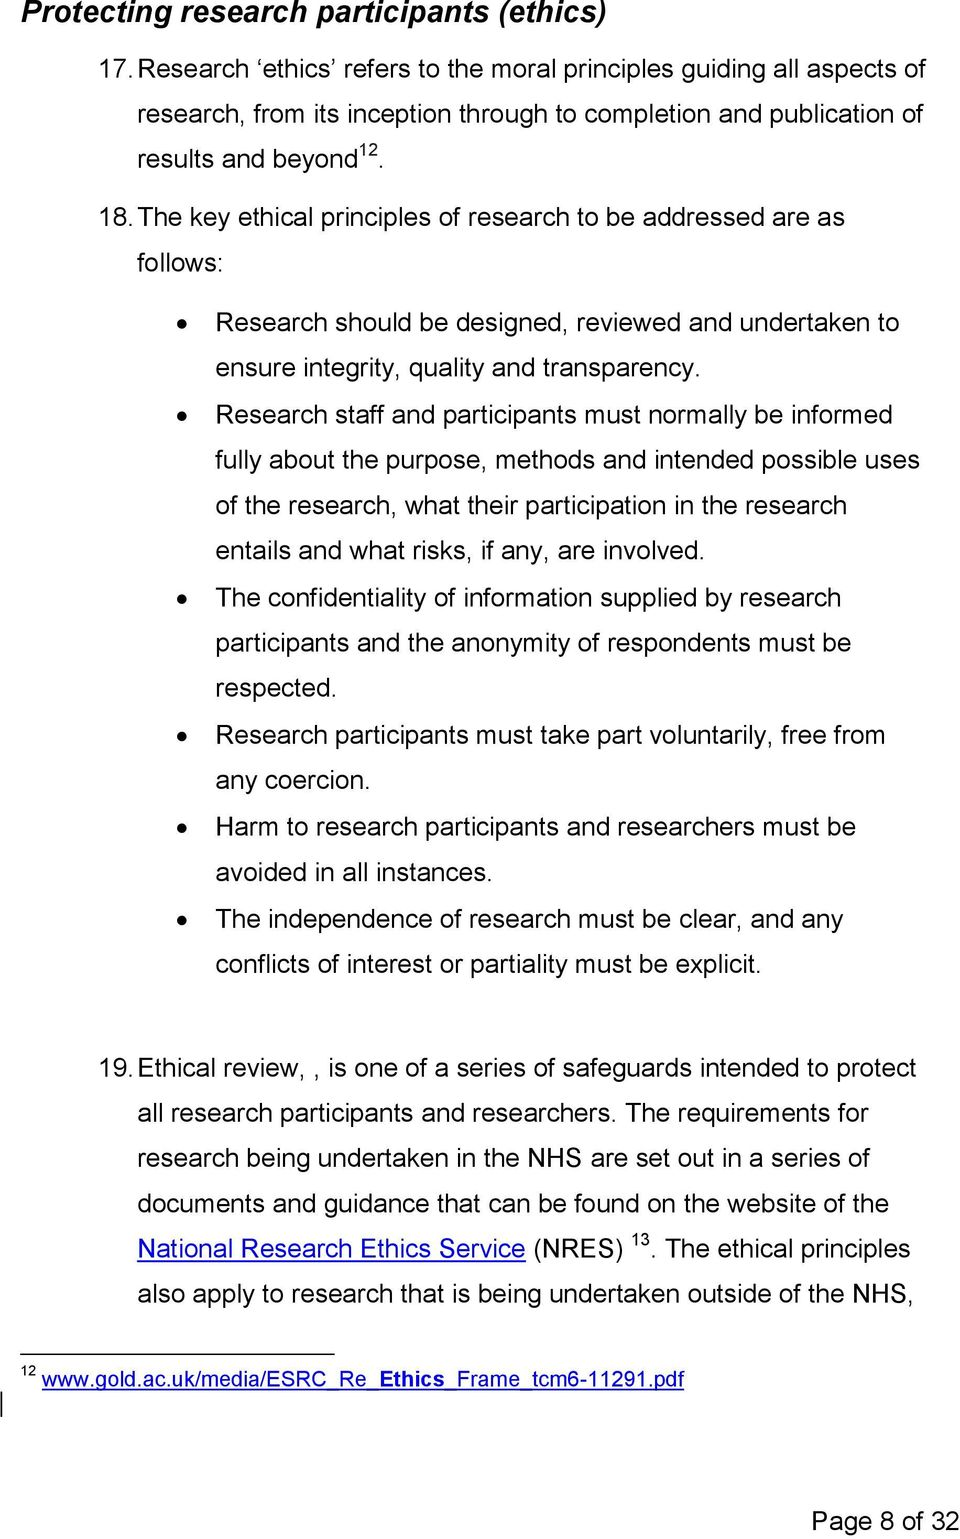 The key ethical principles of research to be addressed are as follows: Research should be designed, reviewed and undertaken to ensure integrity, quality and transparency.